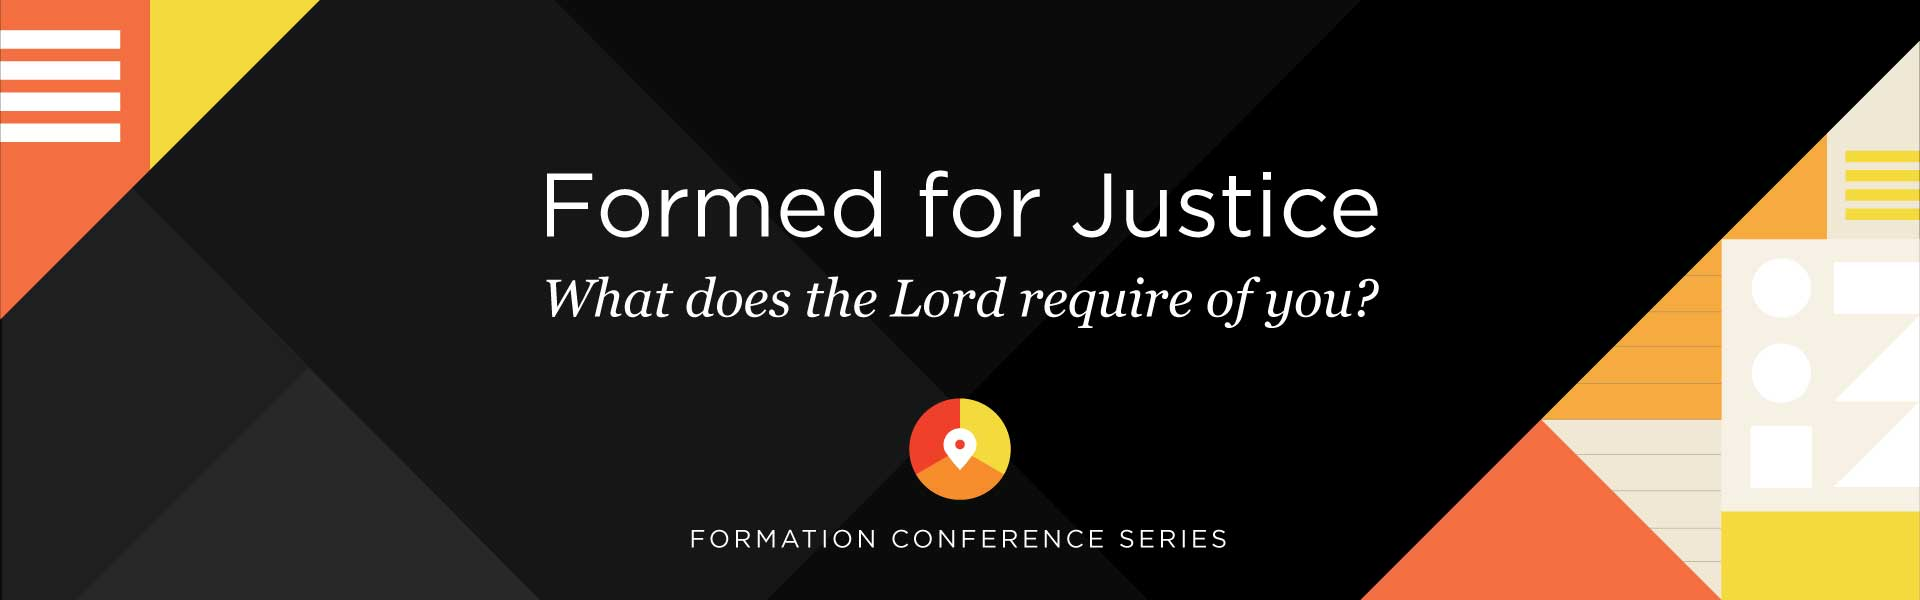 Formed for Justice: What does the Lord require of you?